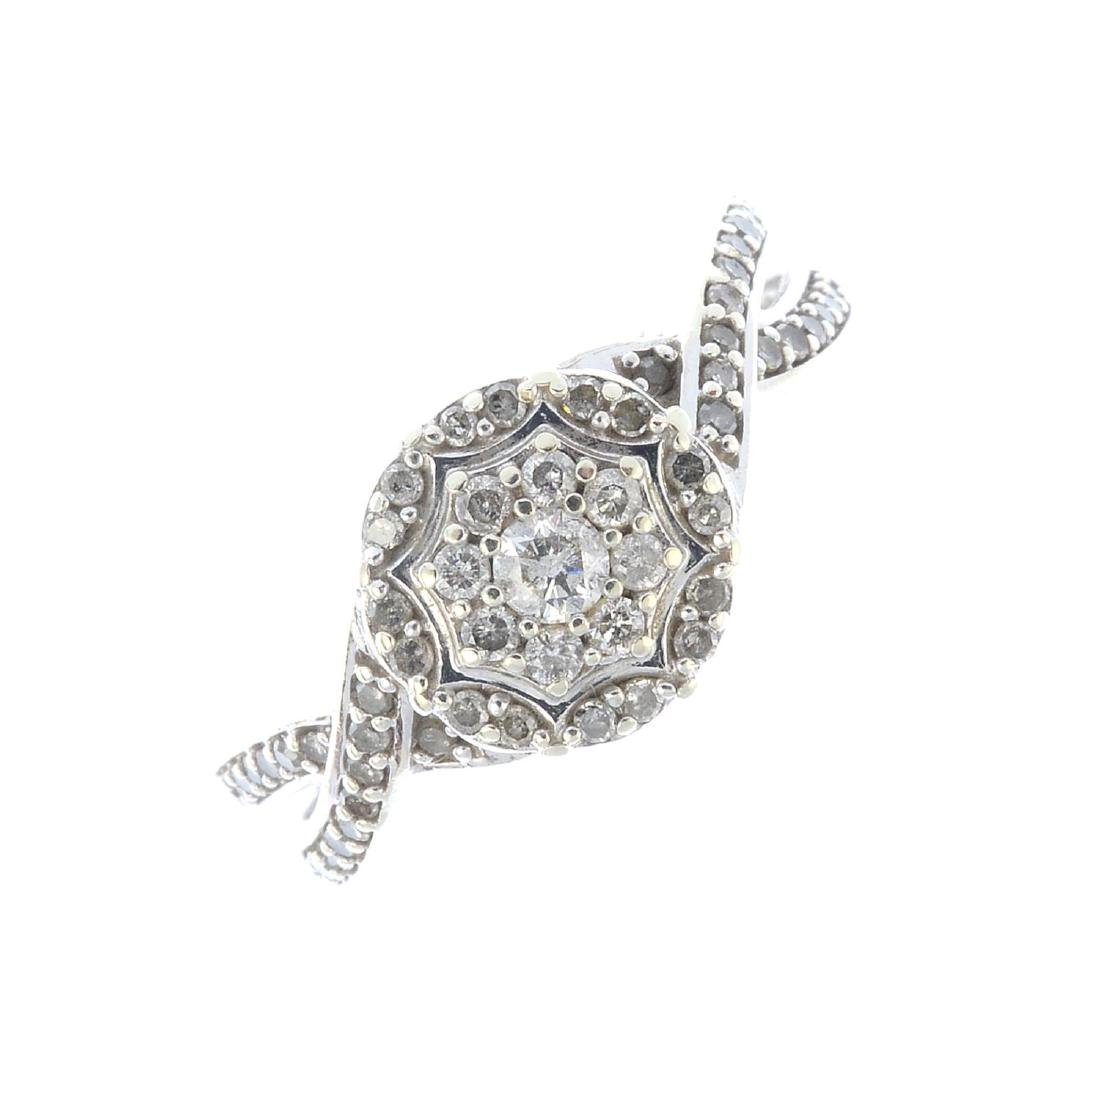 (52781) A 9ct gold diamond cluster ring. The